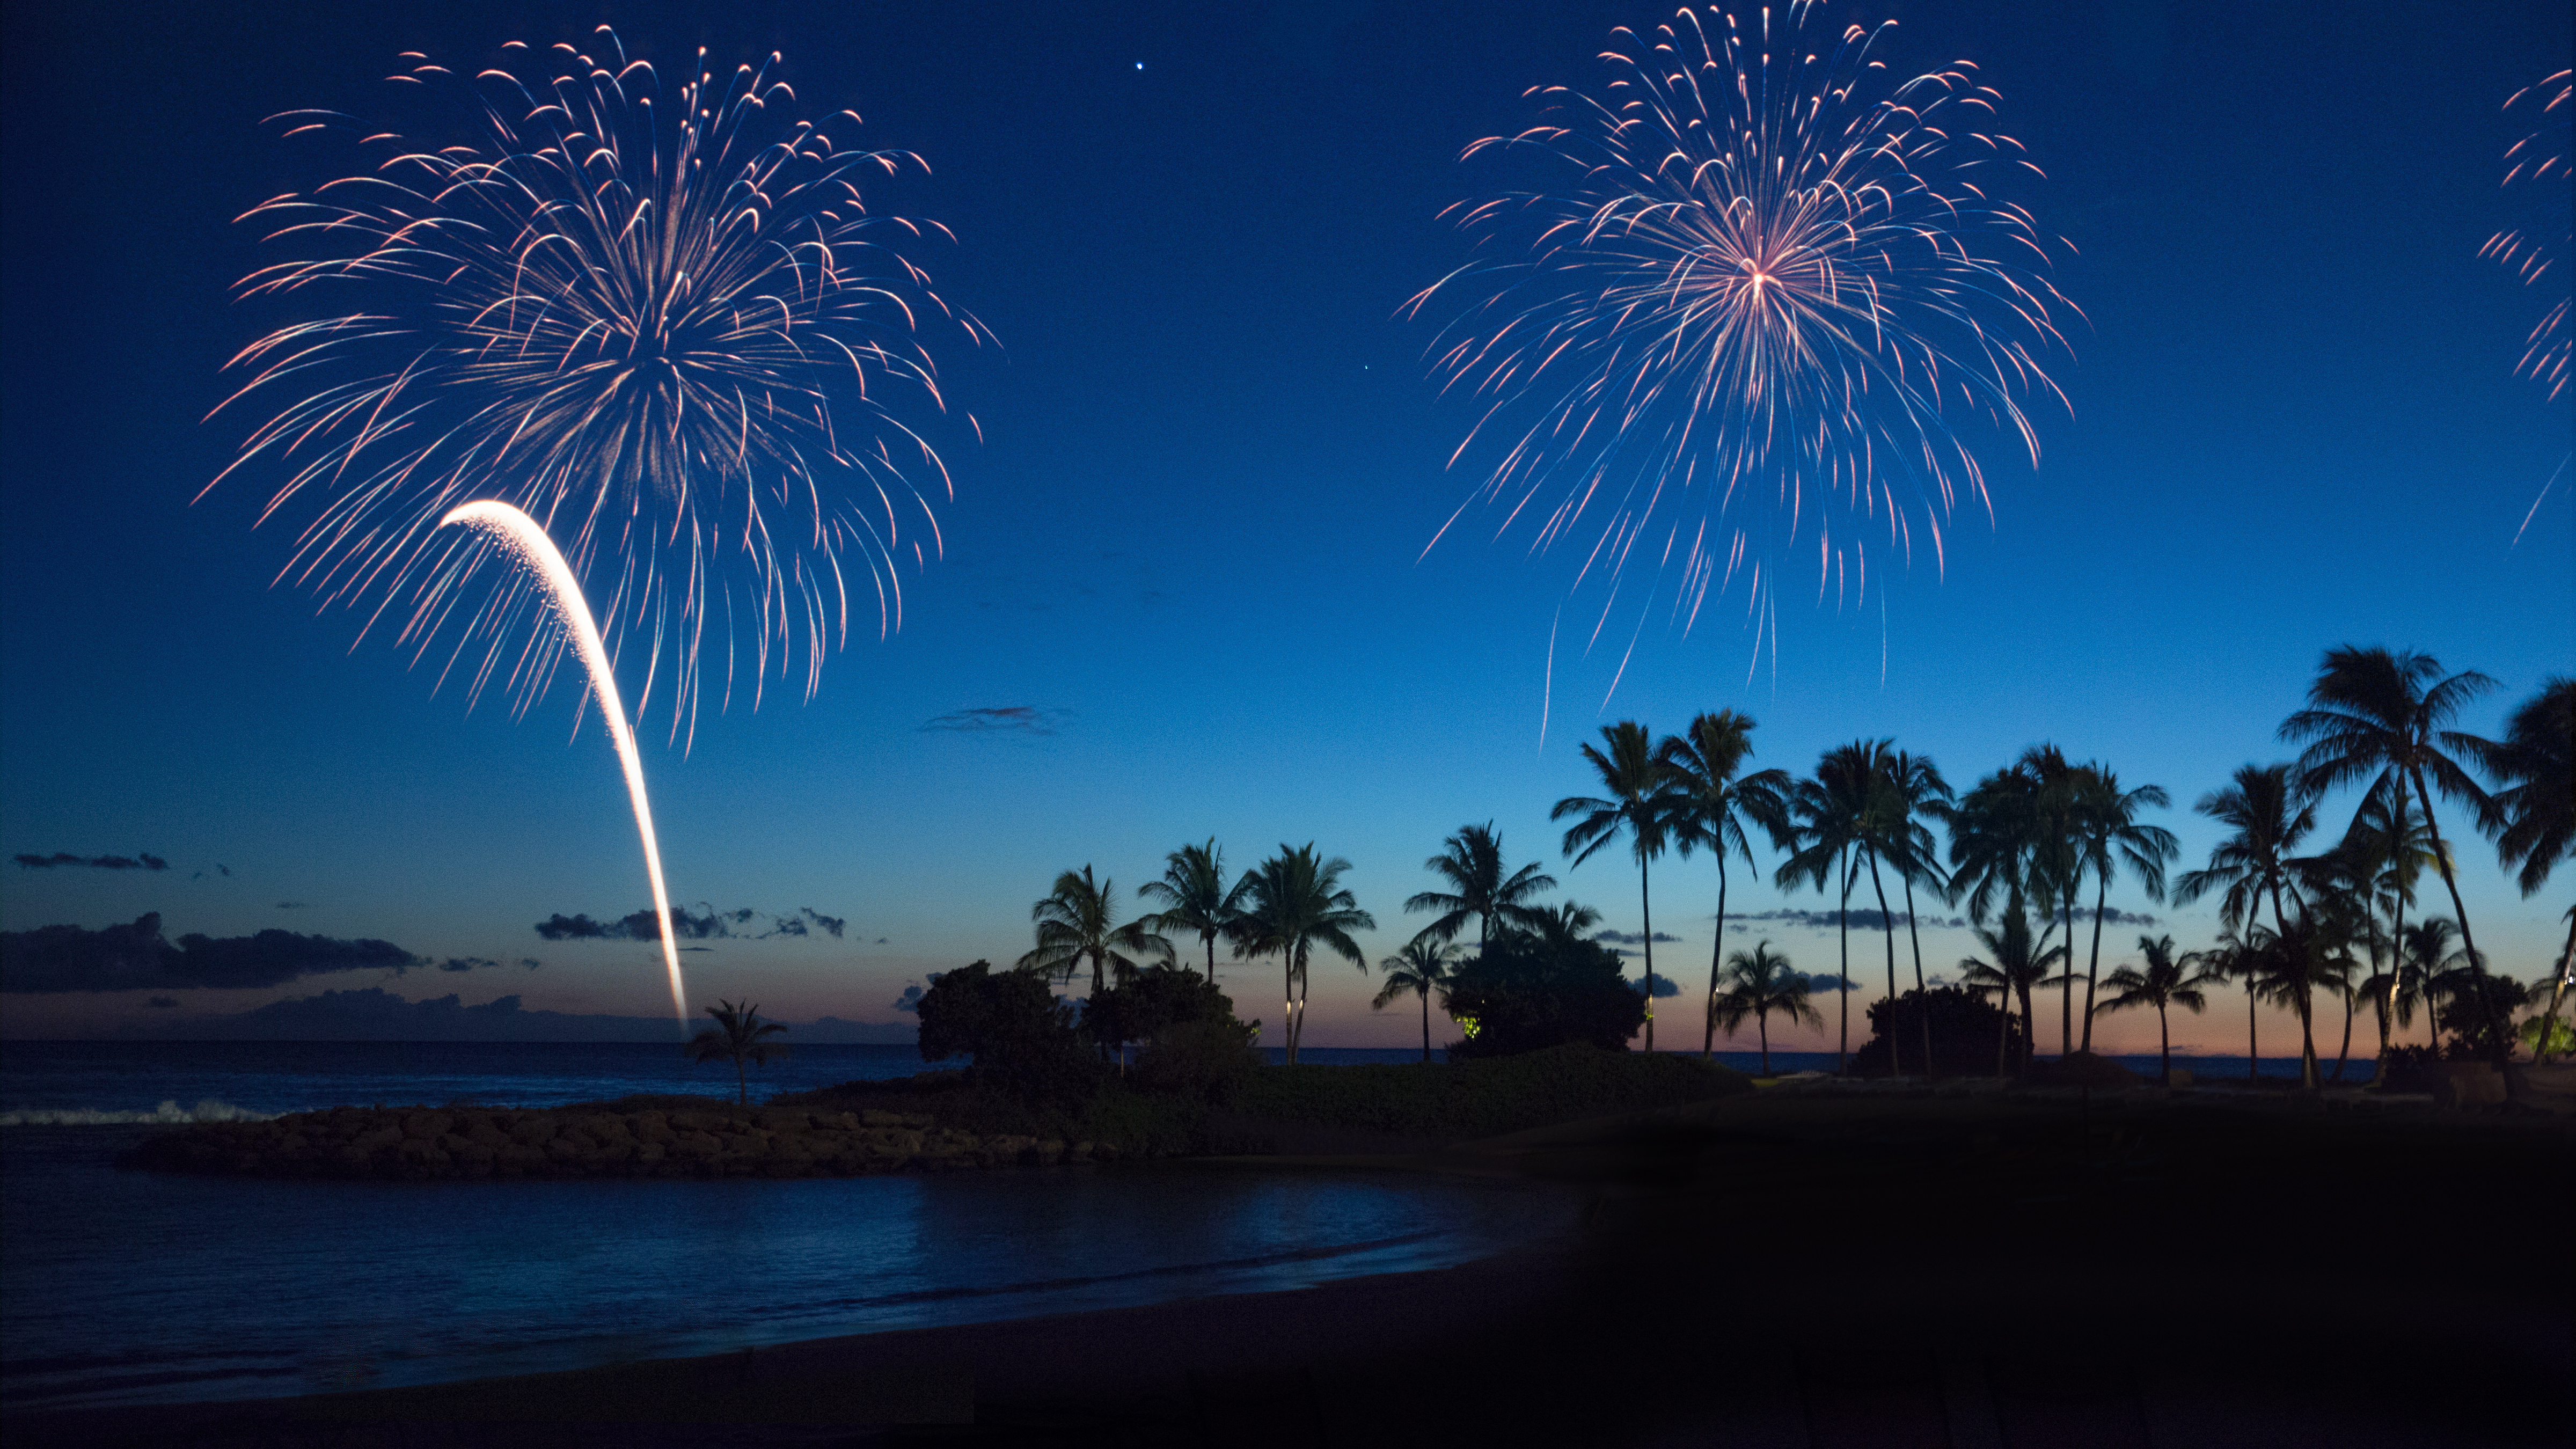 Fireworks over the ocean at Aulani beach